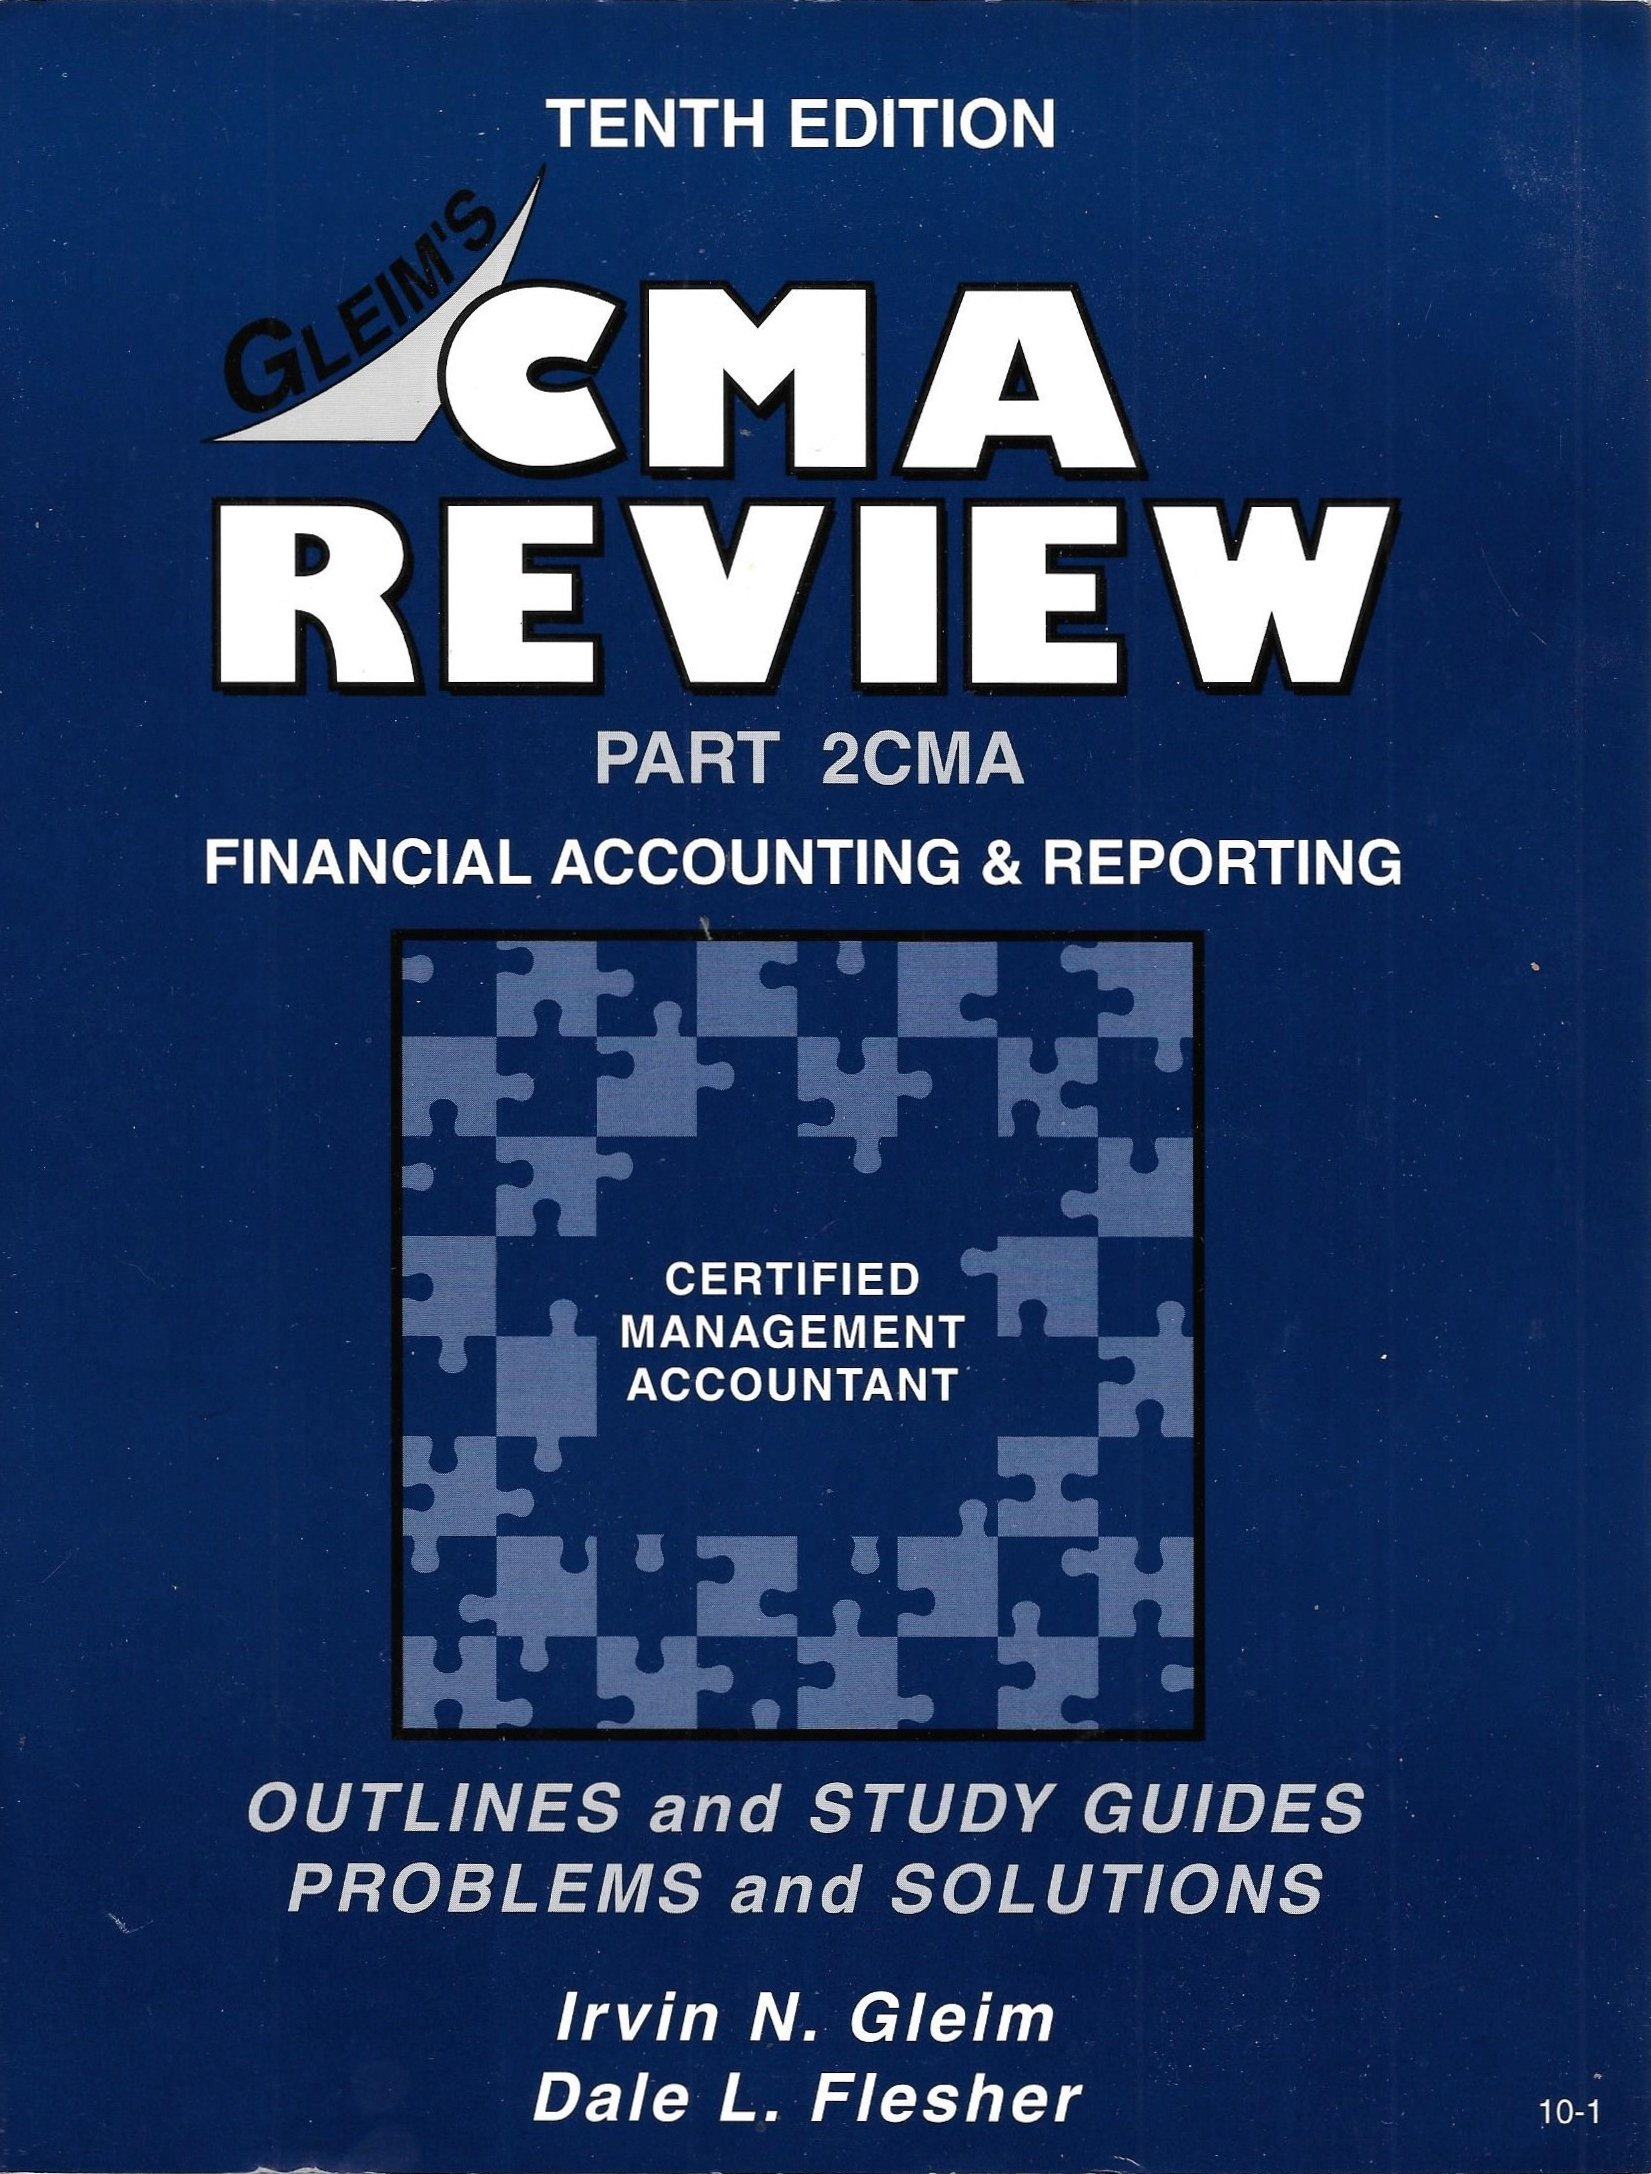 CMA/CFM Review Part 2CMA: Financial Accounting and Reporting, Tenth  Edition: Irvin N. Gleim: 9781581941241: Amazon.com: Books